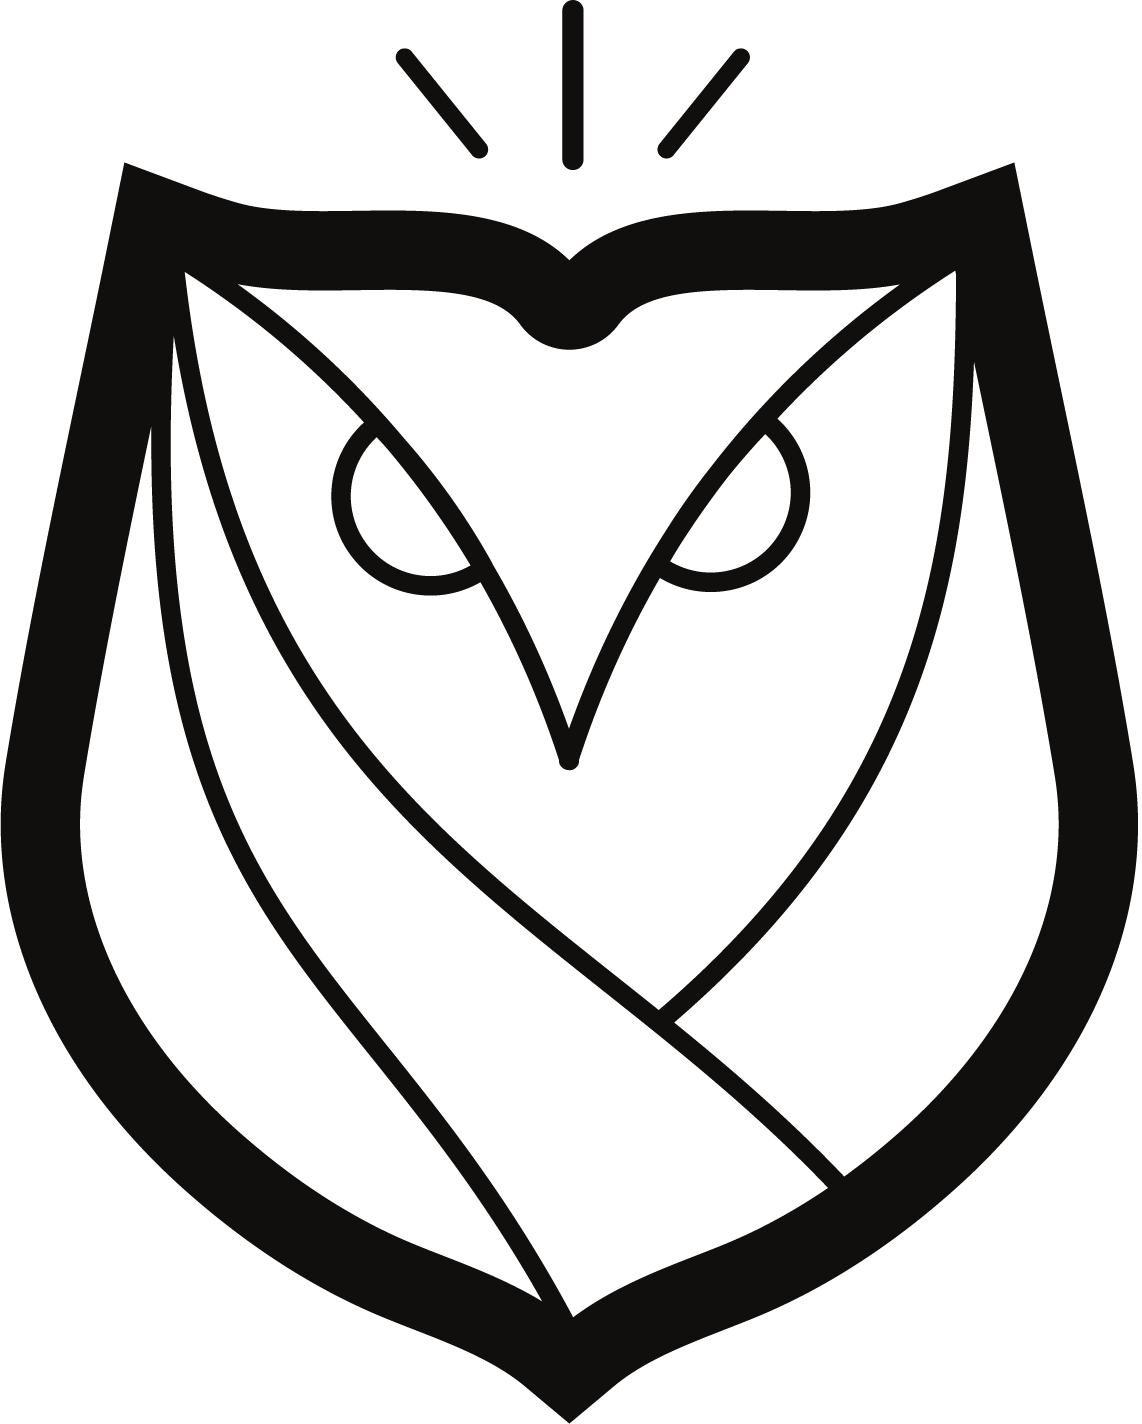 Barred Owl Web logo